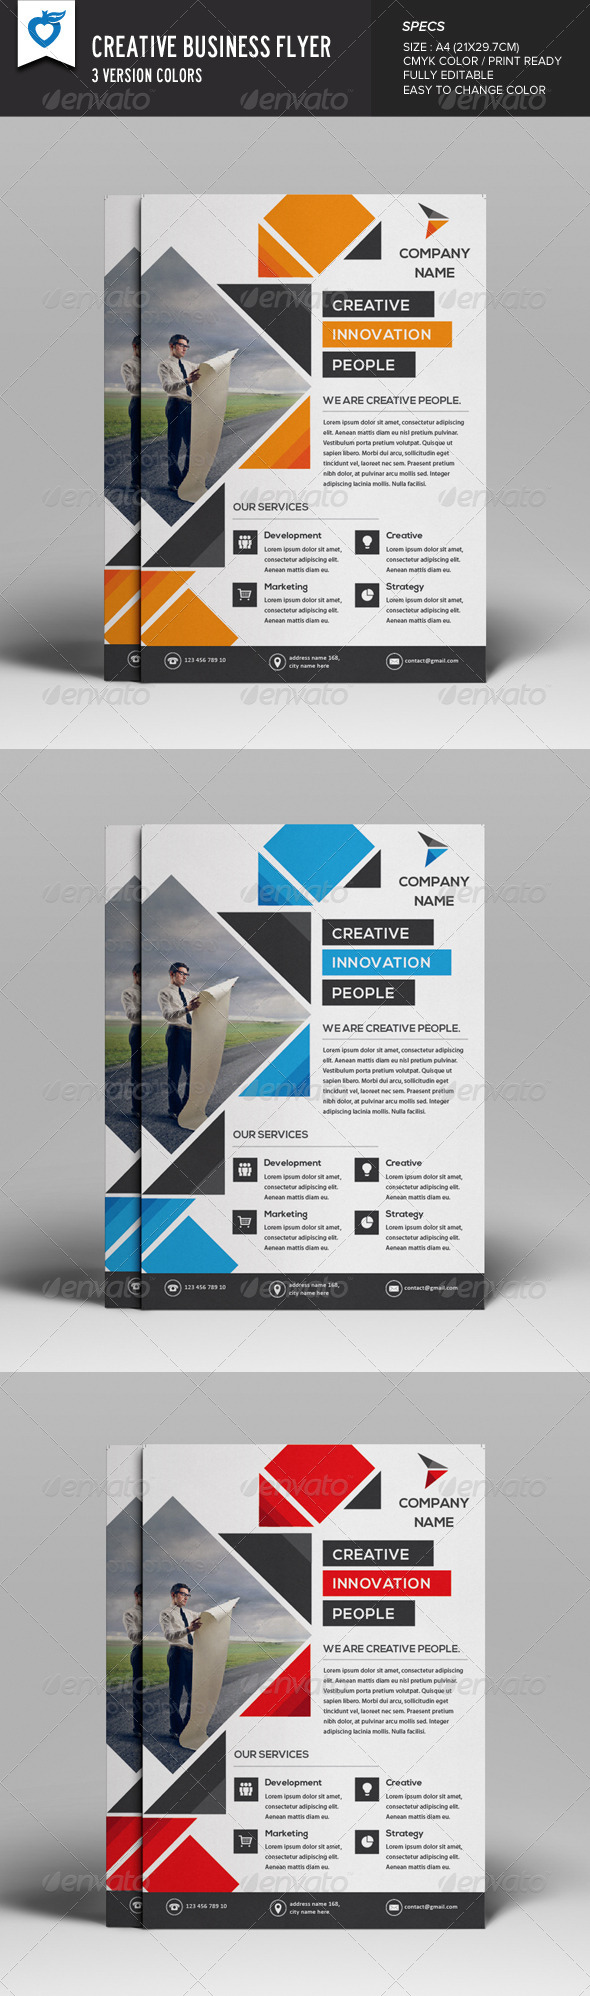 GraphicRiver Creative Business Flyer 8132559